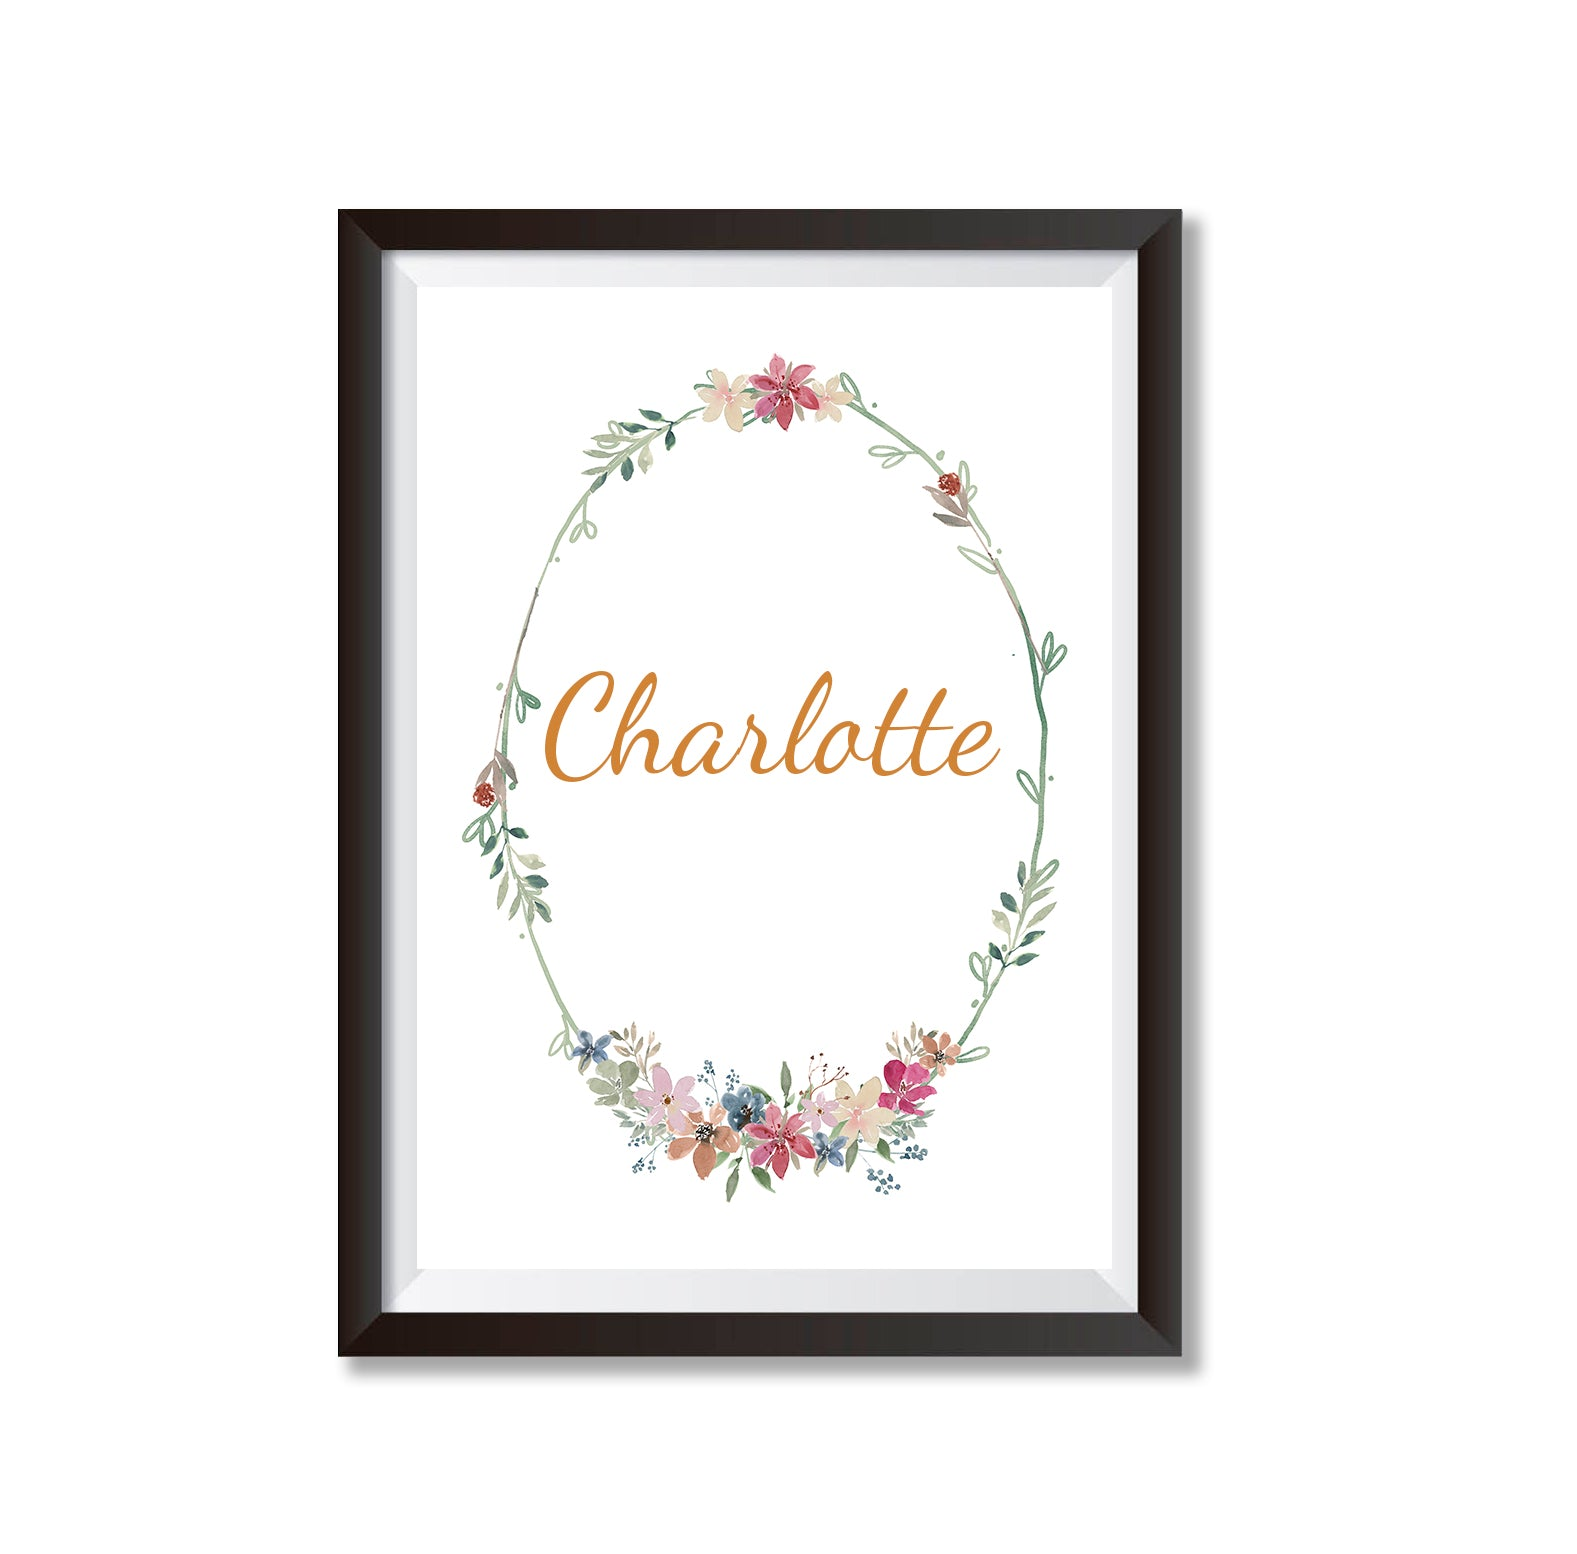 Personalised Name Floral Border Poster Print-Print-Mode Prints